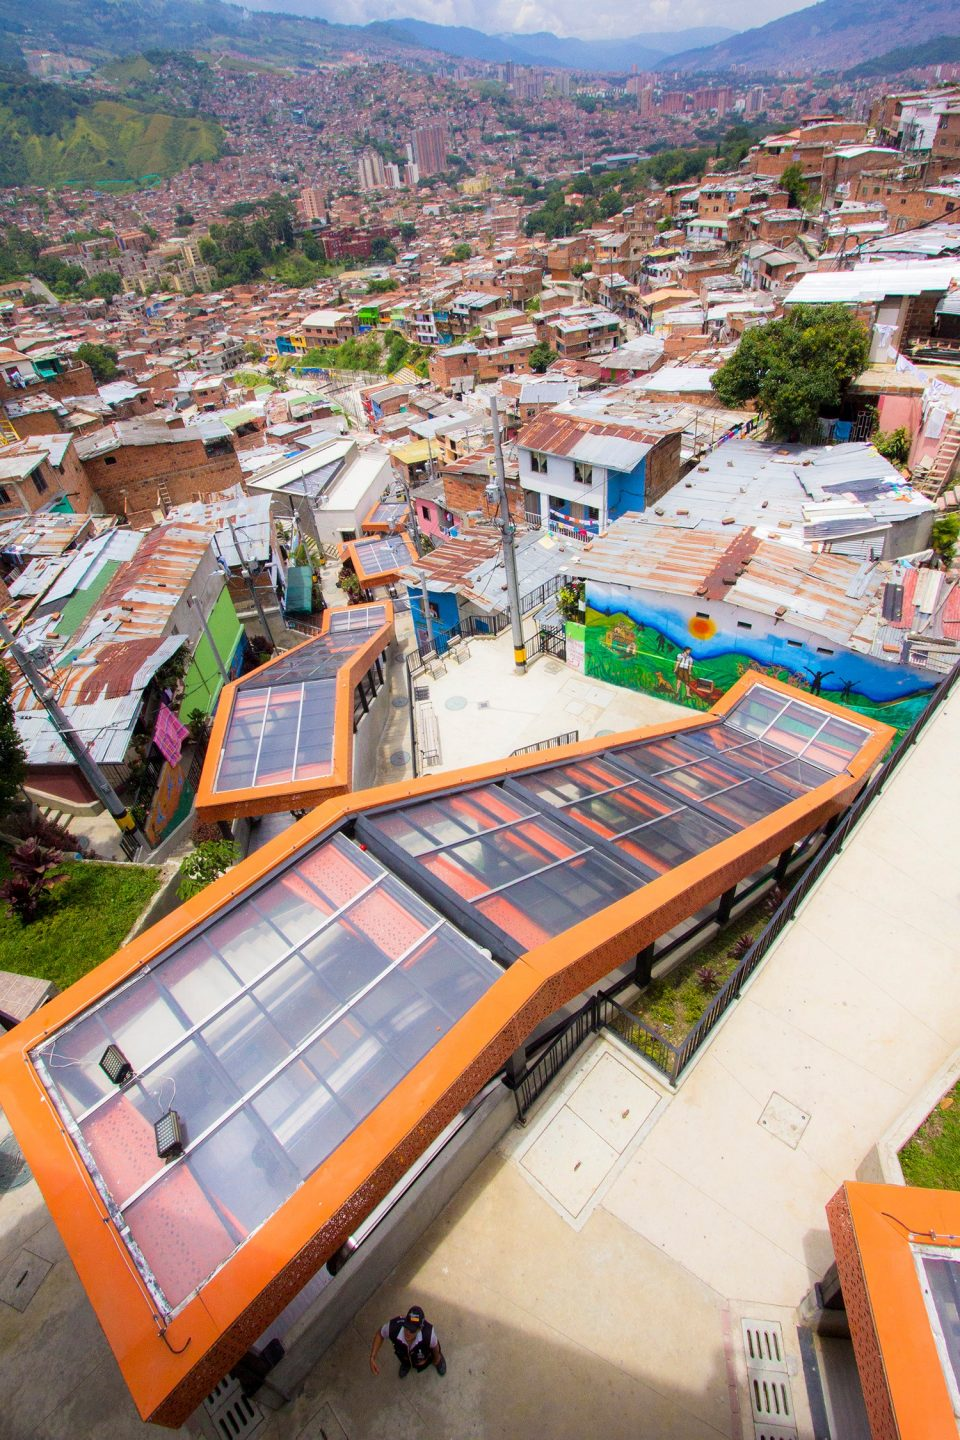 medellin-escalators-outdoor-roof.jpg